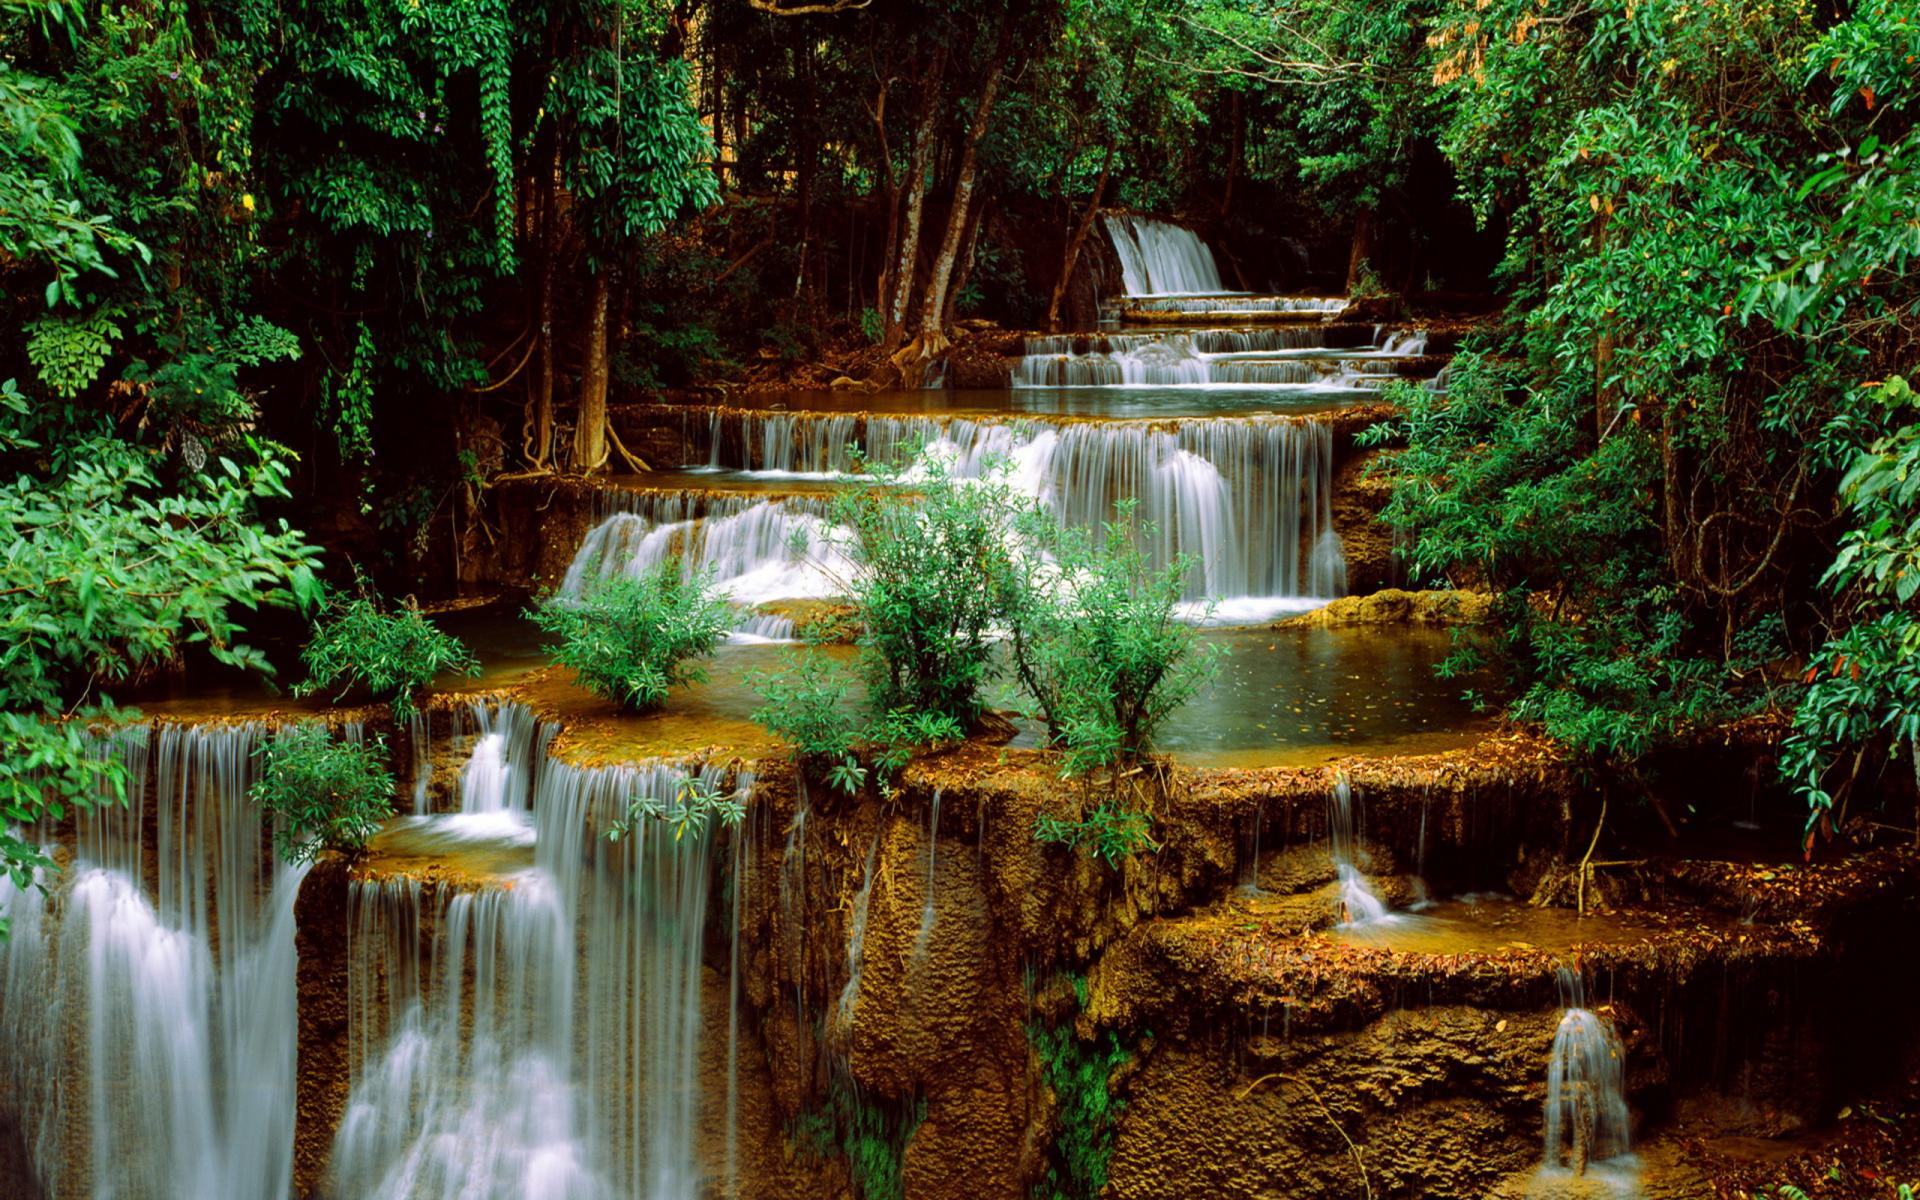 download live wallpaper of waterfall which is under the waterfall 1920x1200